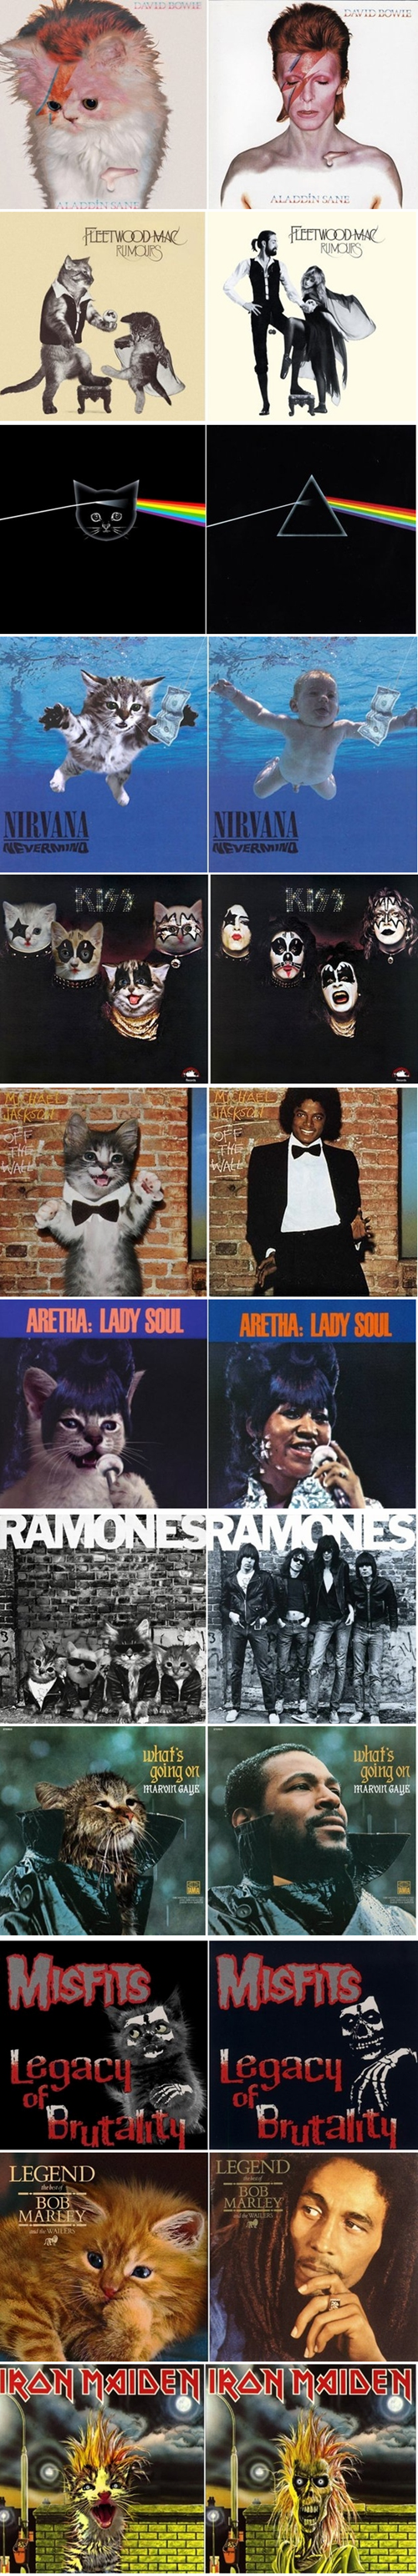 parodies Cats album covers Music FAILS g rated - 7023002880